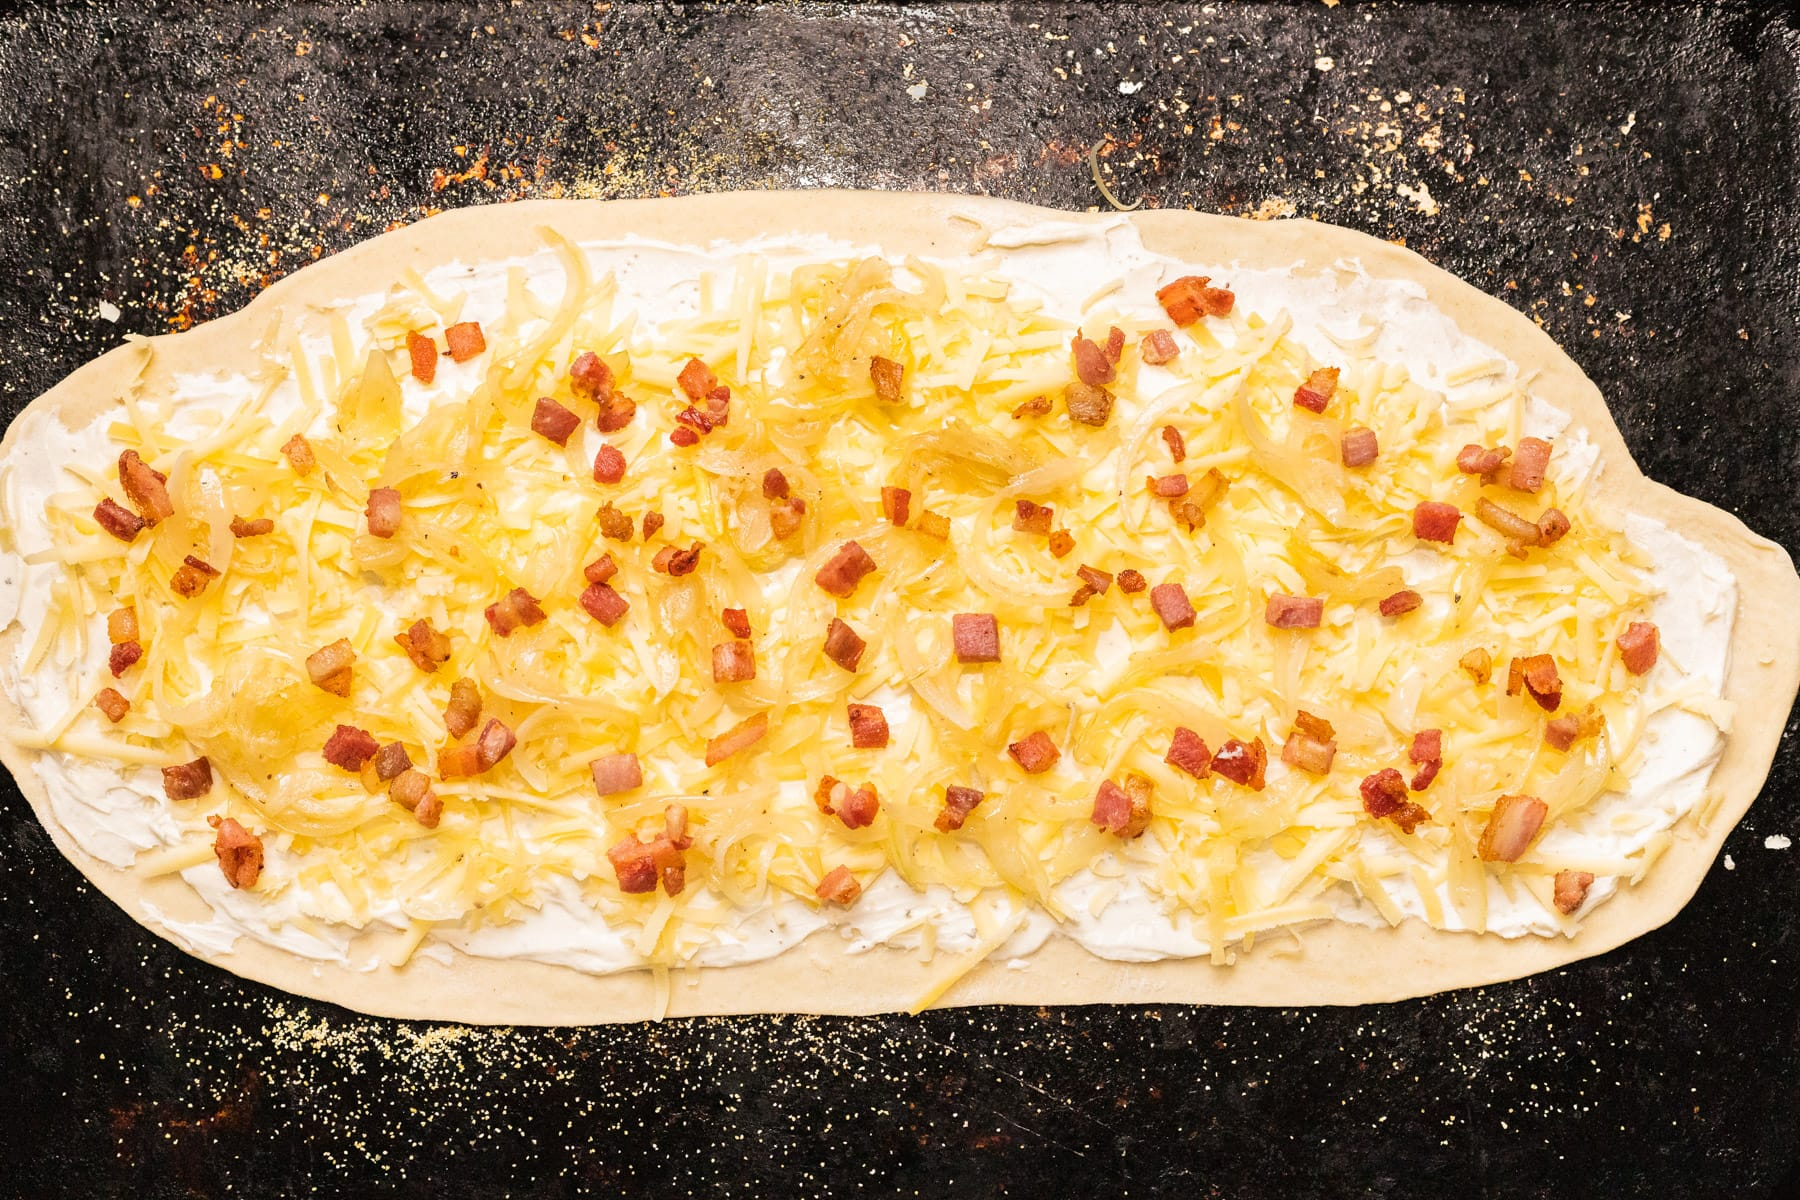 A top down view of unbaked flammkuchen on a baking sheet.